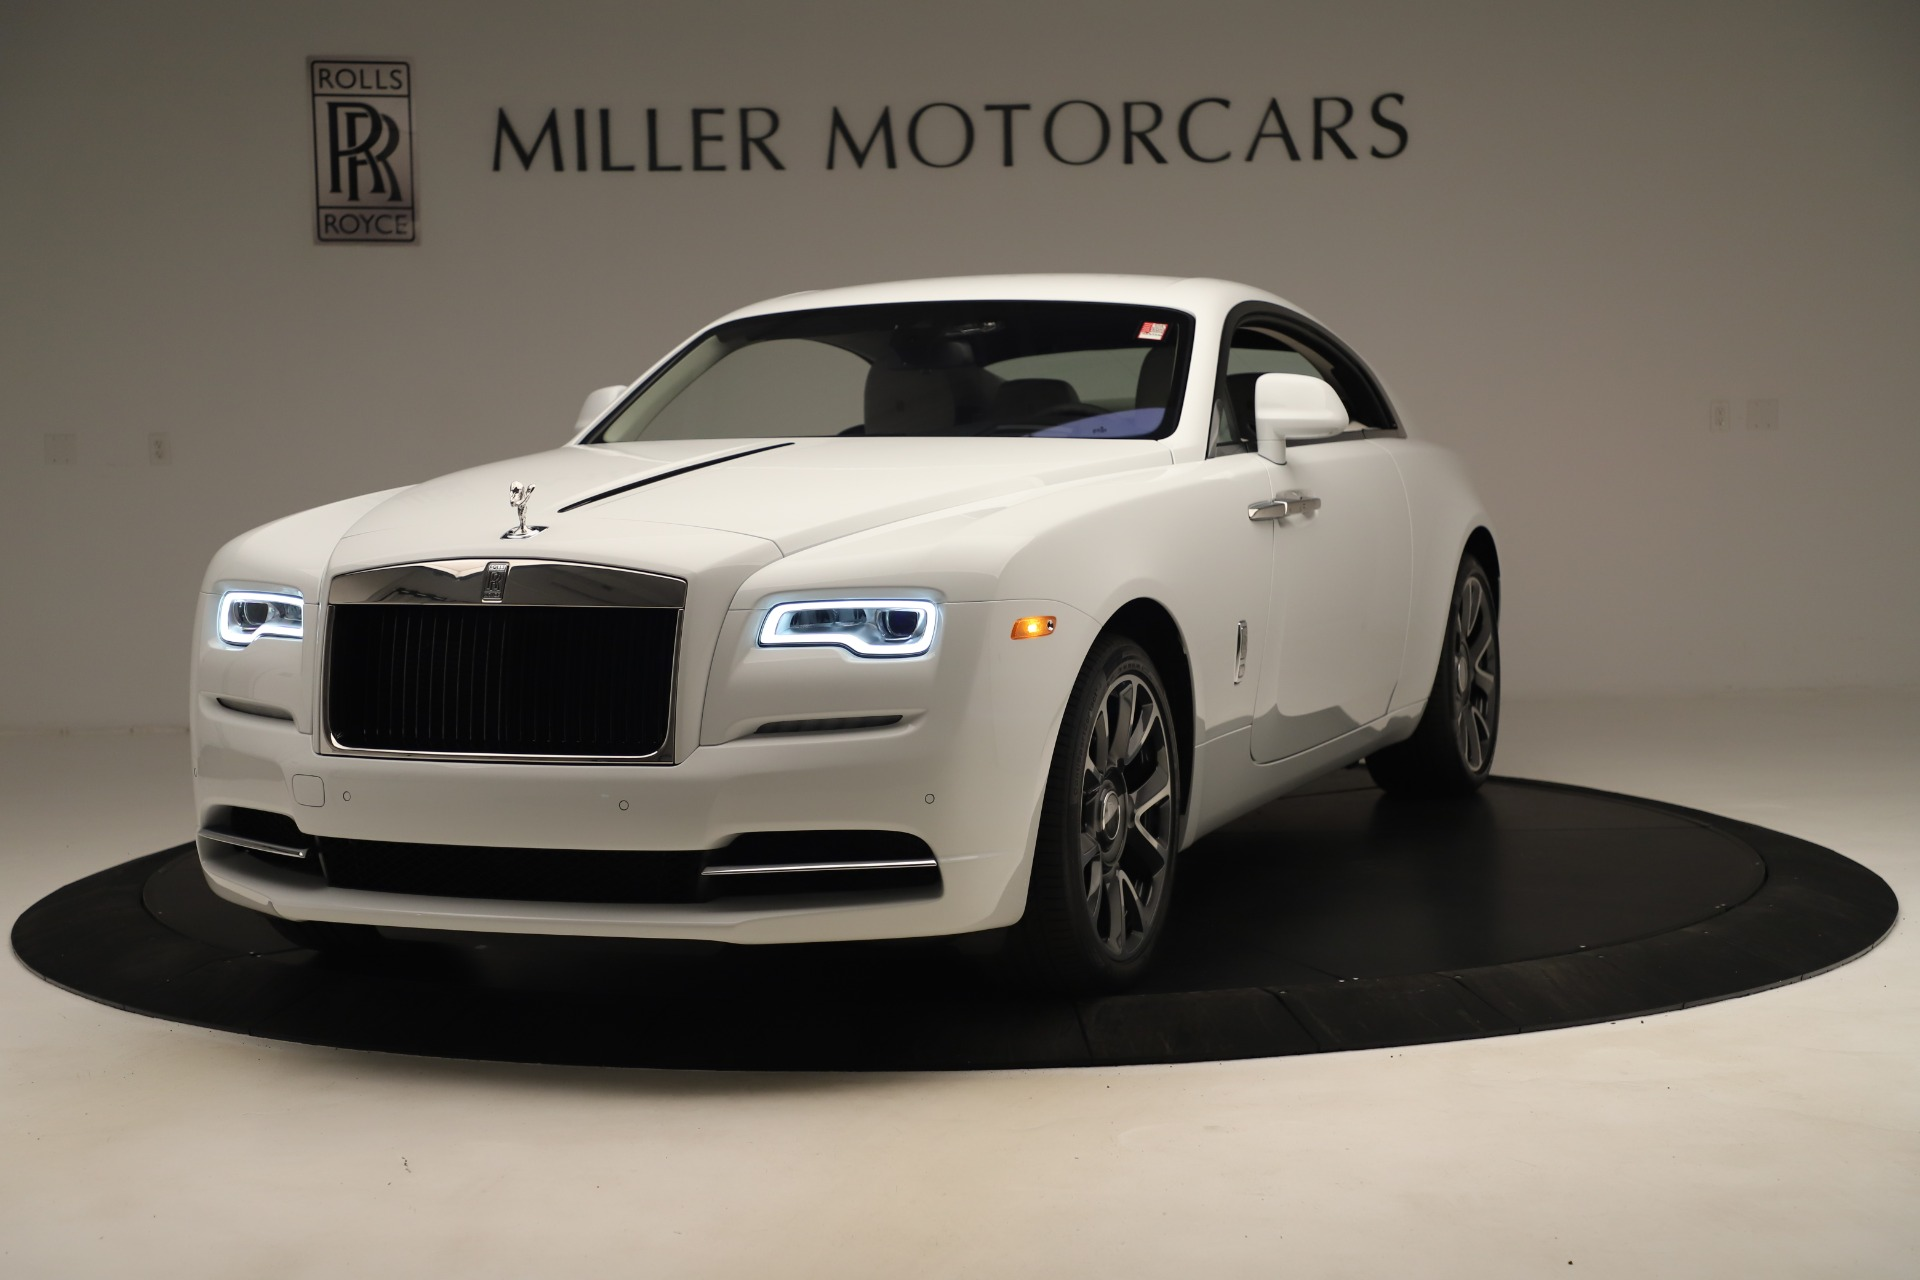 New 2019 Rolls-Royce Wraith for sale $391,000 at Bugatti of Greenwich in Greenwich CT 06830 1